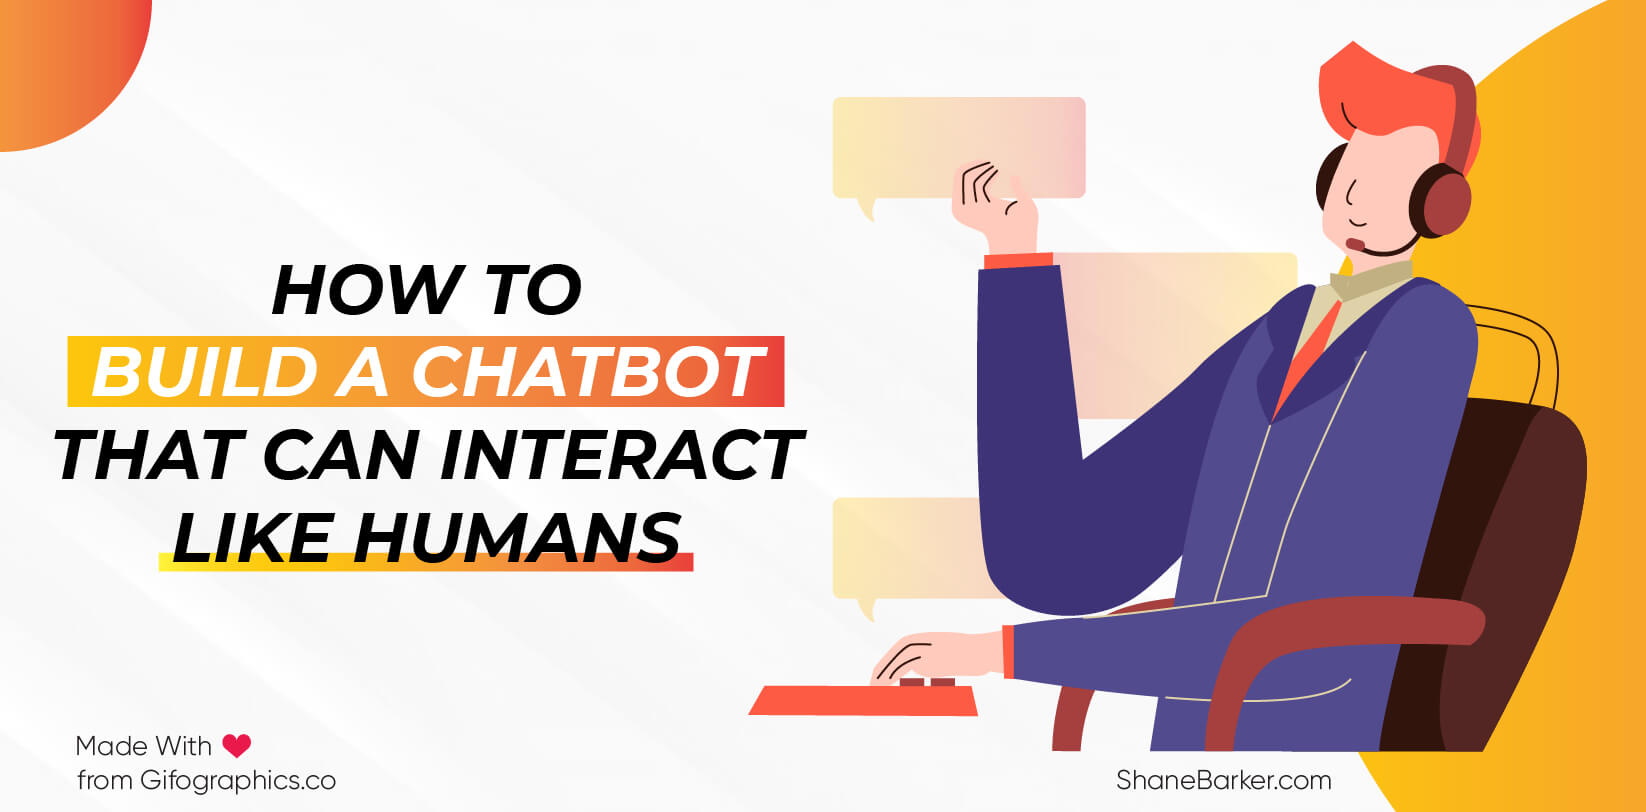 How to Build a Chatbot That Can Interact Like Humans